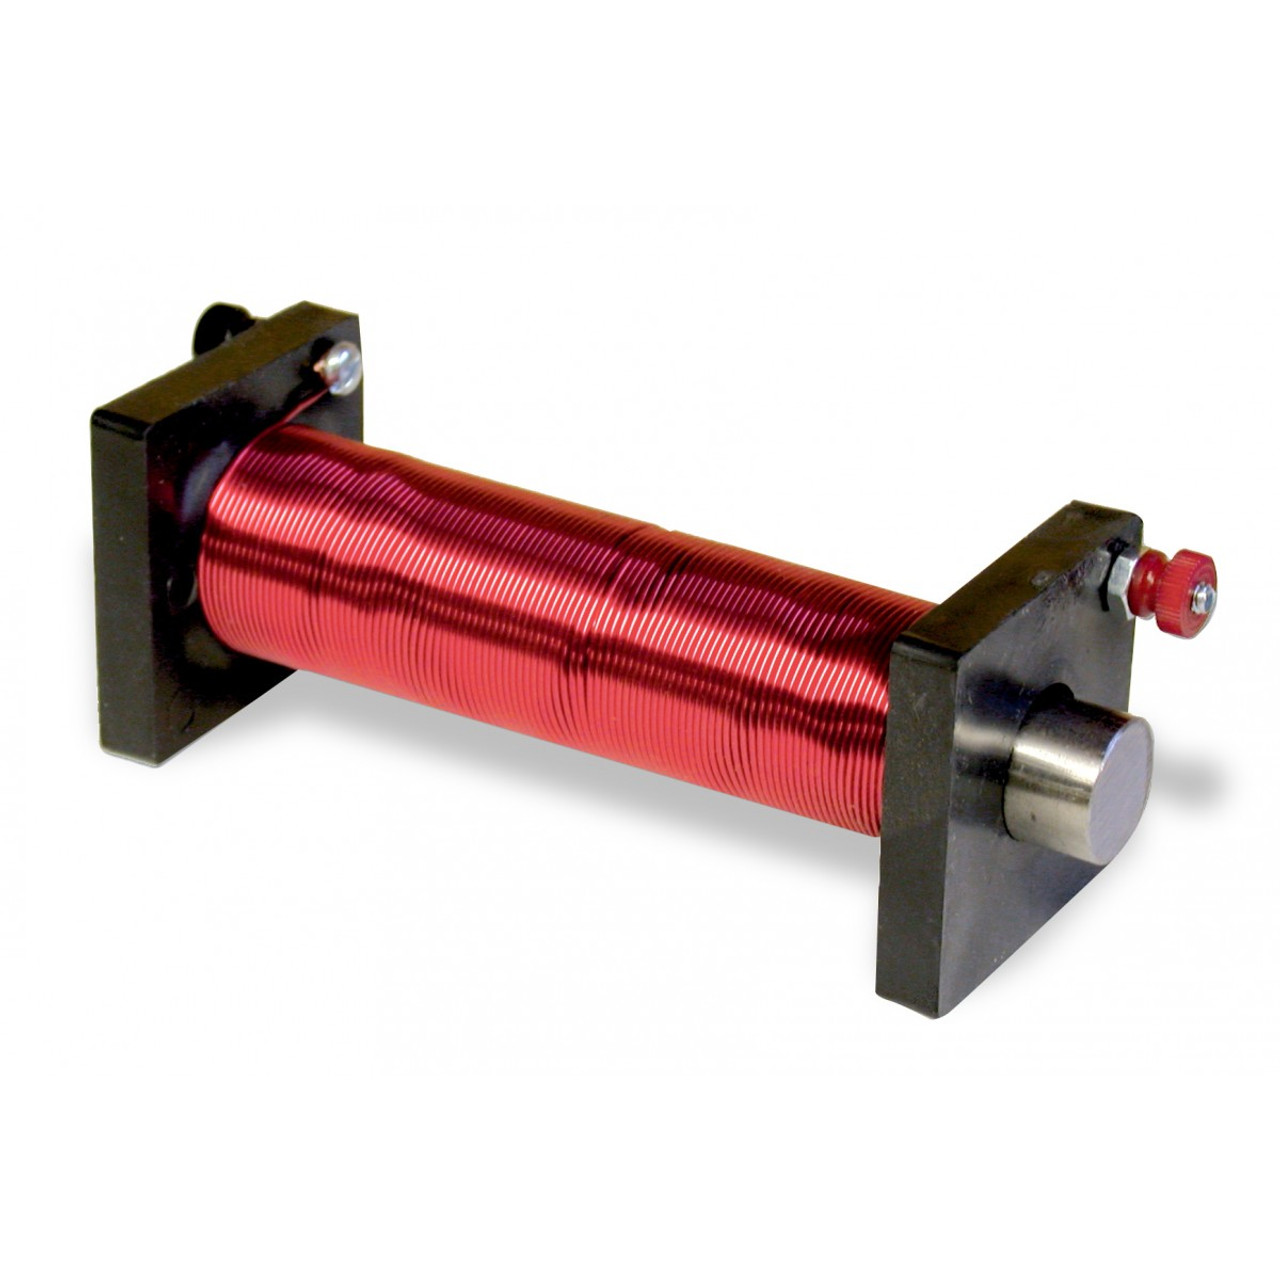 SOLENOID / ELECTROMAGNET WITH IRON CORE